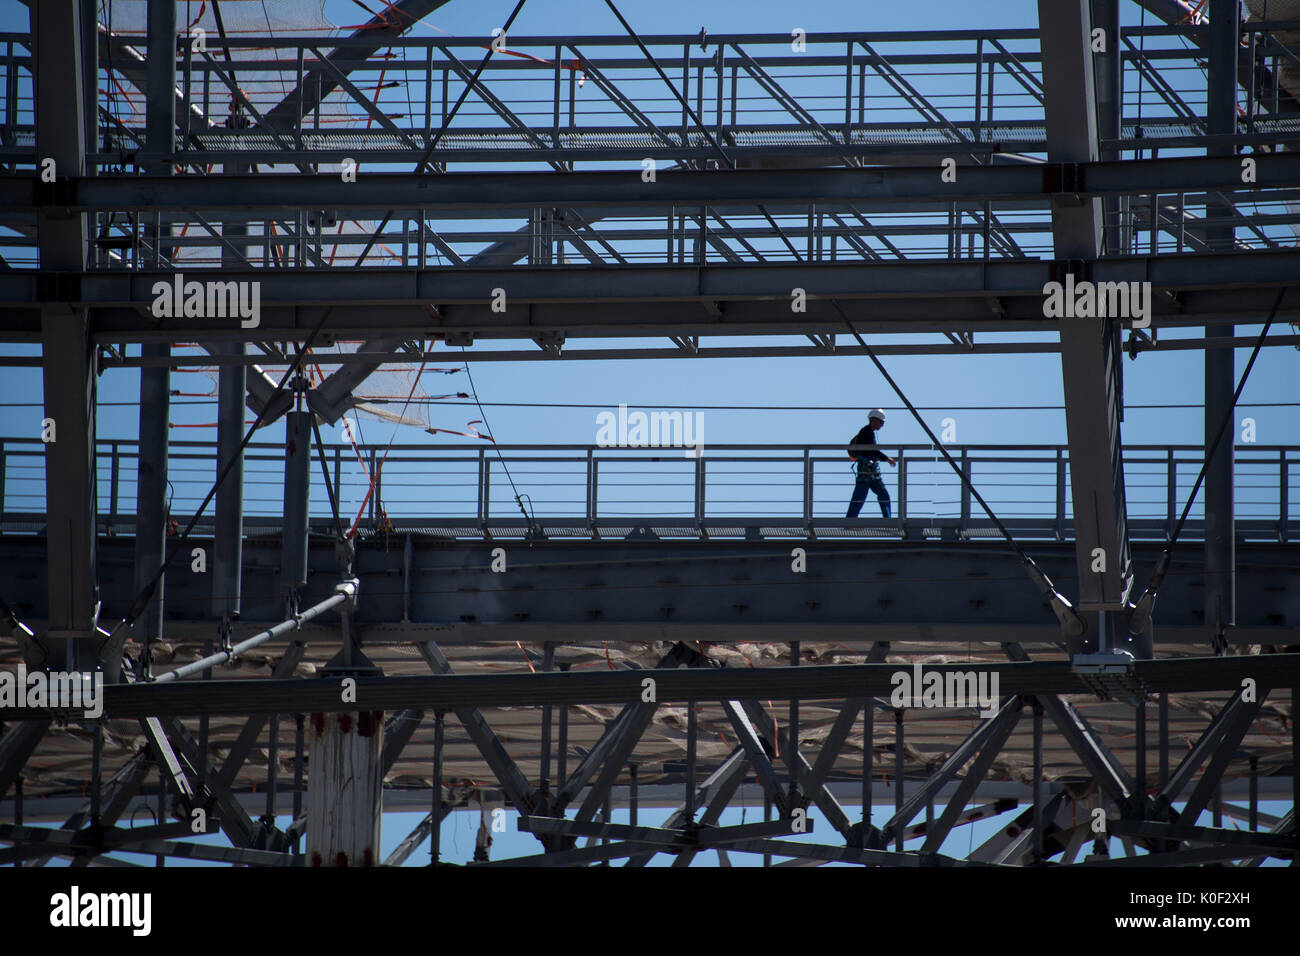 A construction worker walking through the catwalk of the